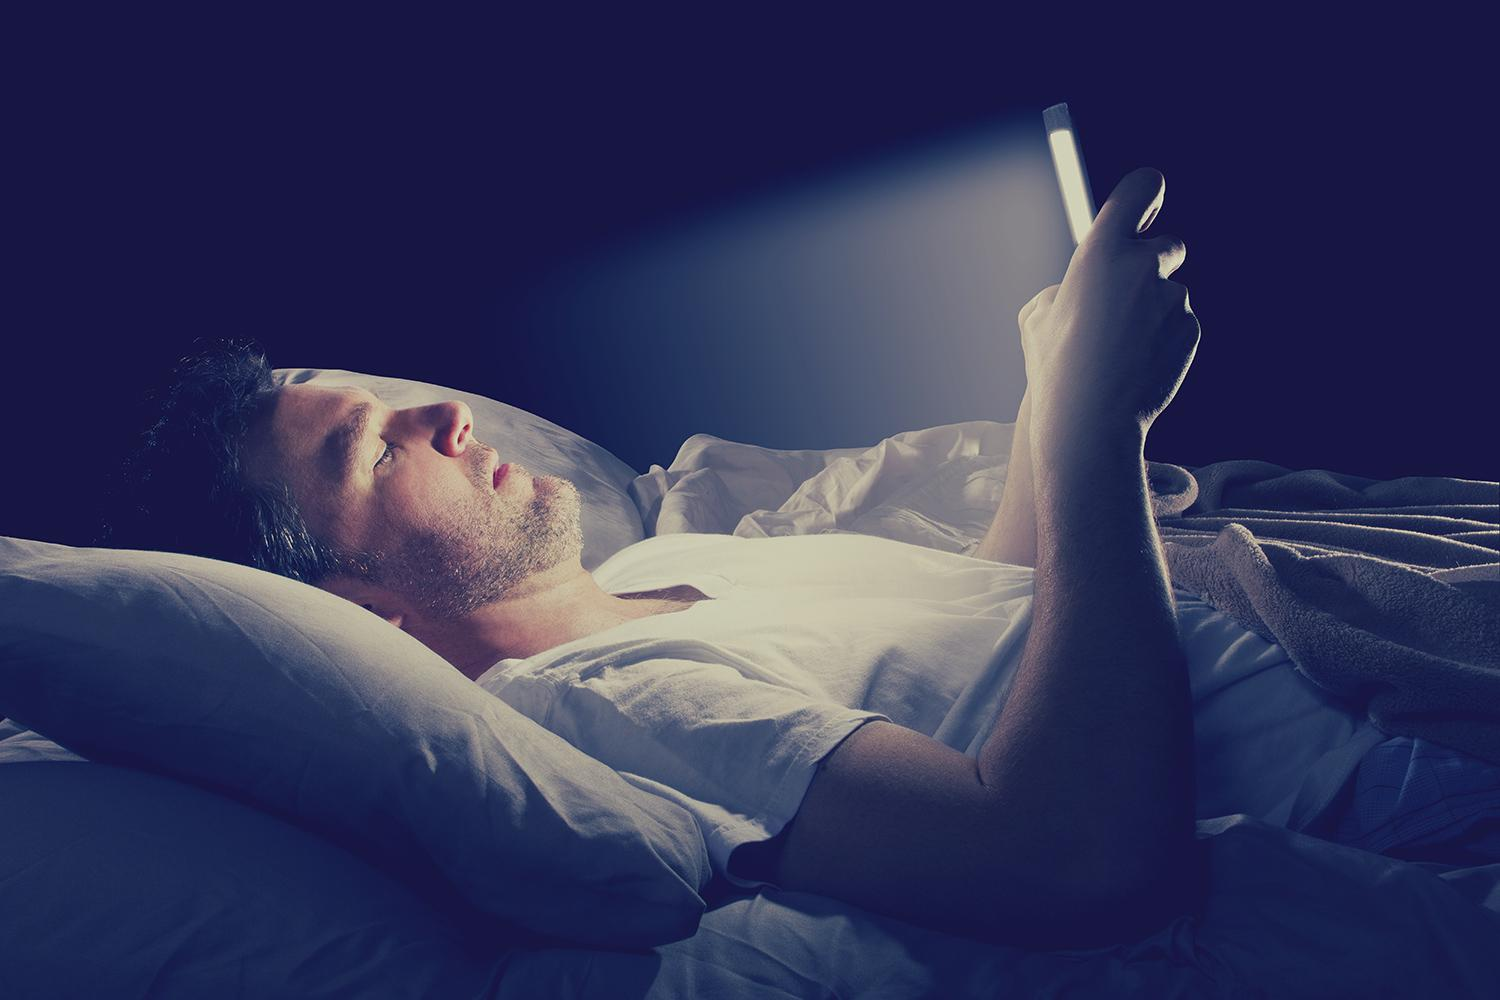 social media usage lead to sleep deprivation digital trends social media use sleep deprivation does blue light really affect your we ask an expert